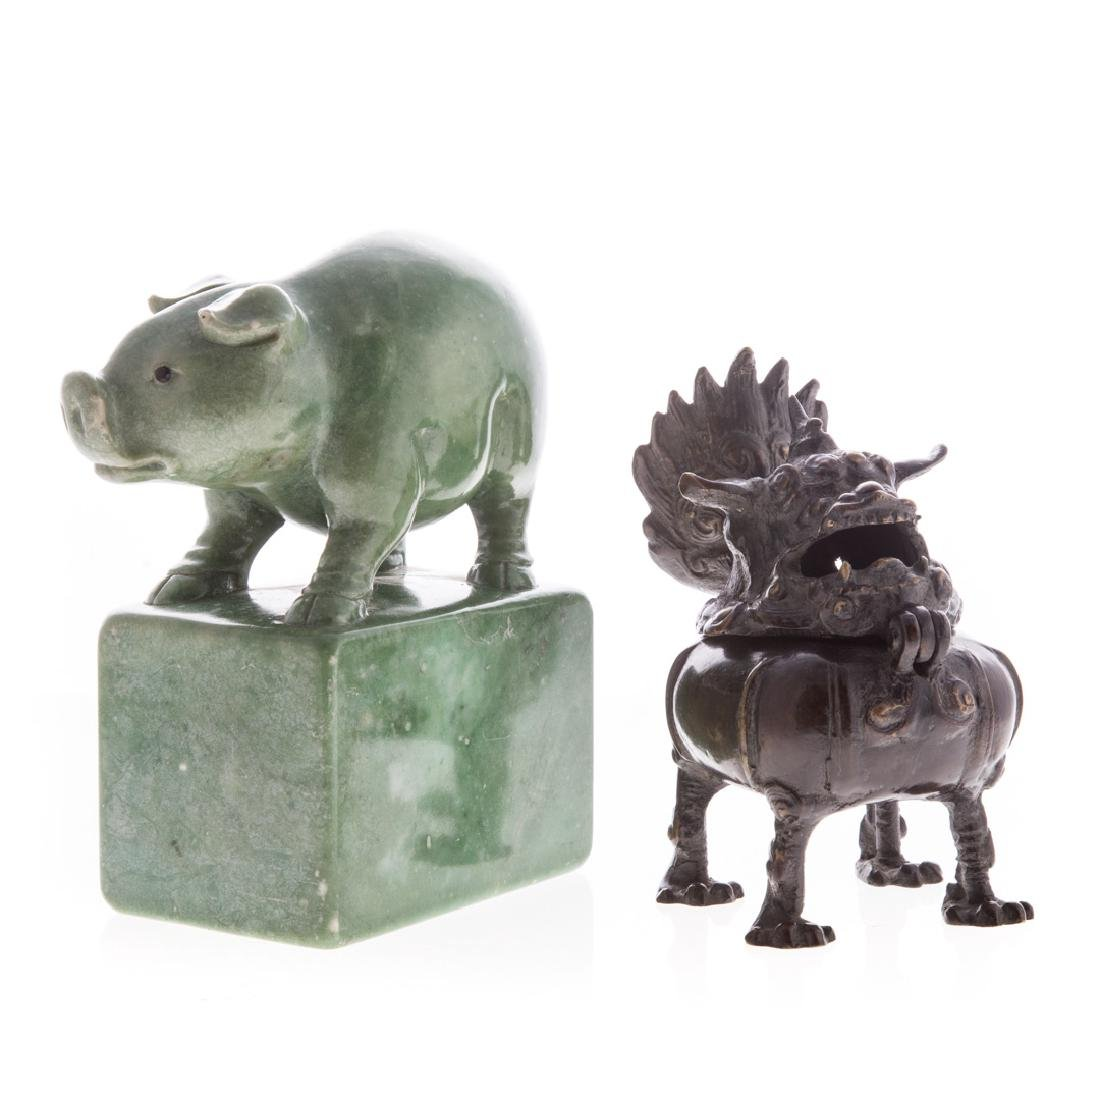 Chinese carved hardstone pig and bronze censor - 2